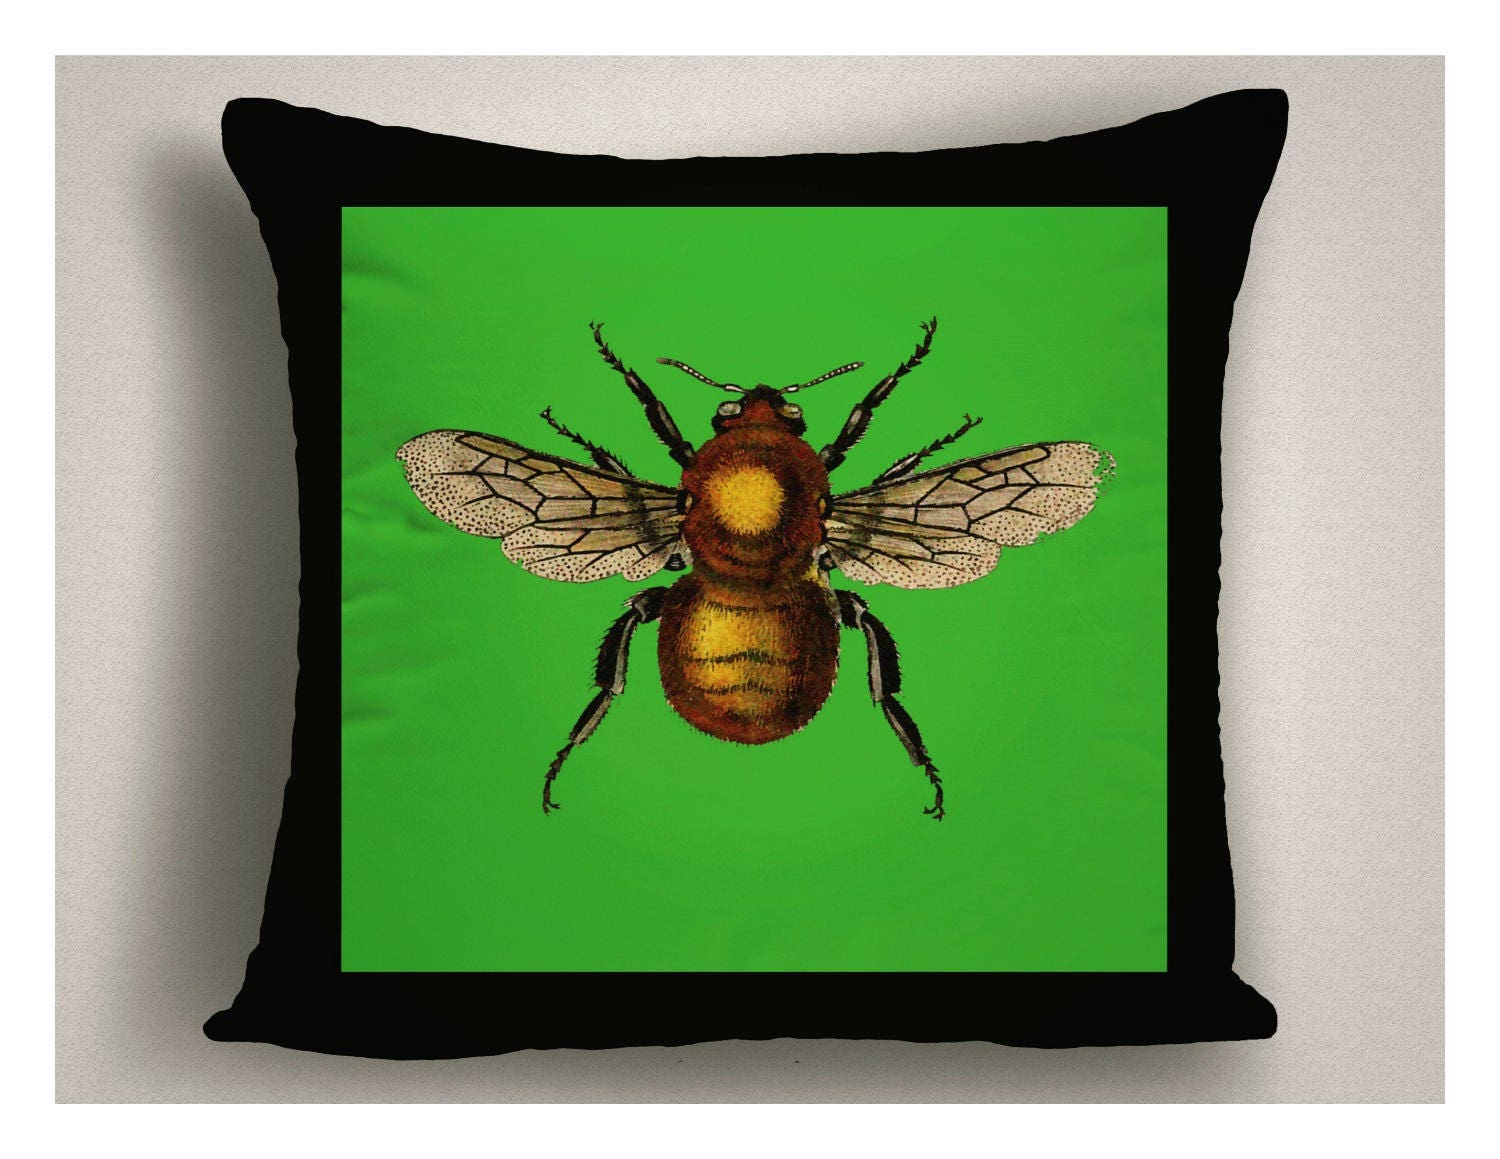 Insect Design Outdoor Pillows, Green Patio Pillow Cover, Insect Throw Pillow  For Patio, Decorative Outdoor Pillow Cushion